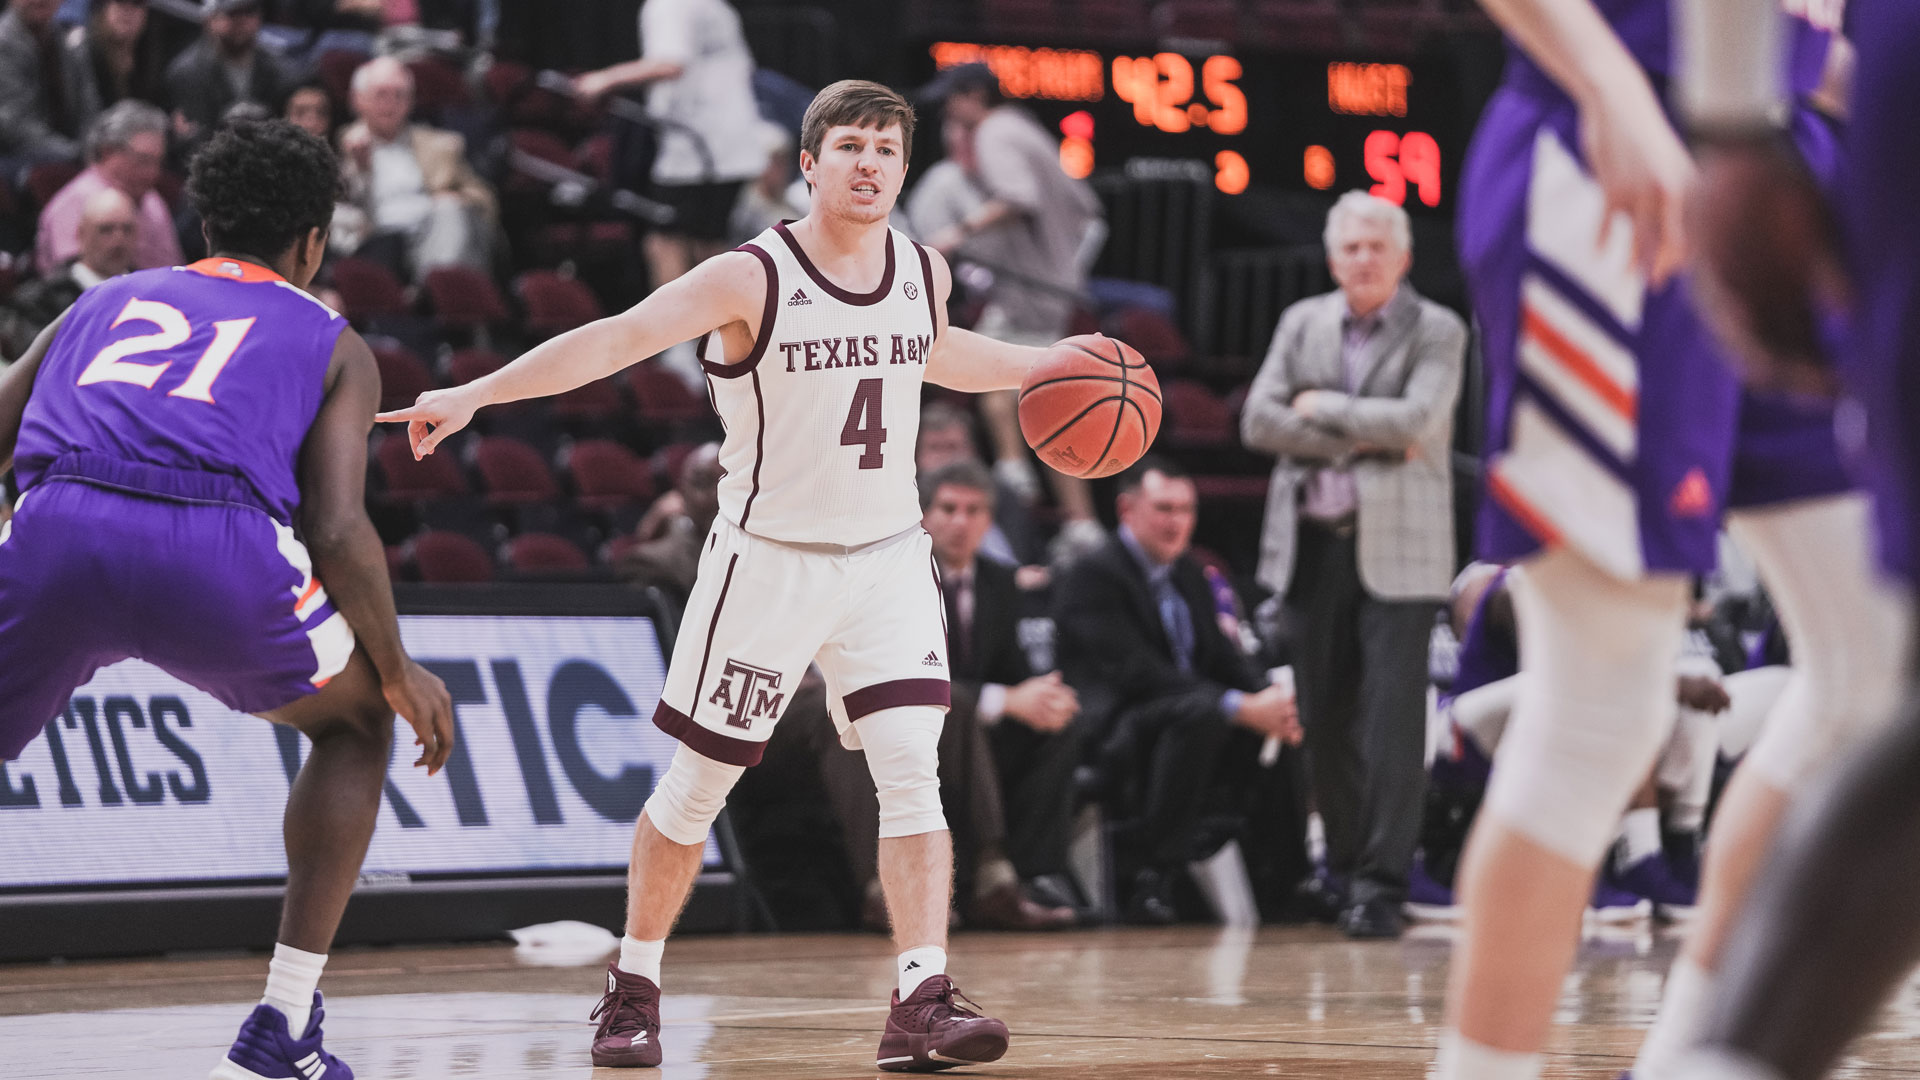 mark french - men's basketball - texas a&m university athletics